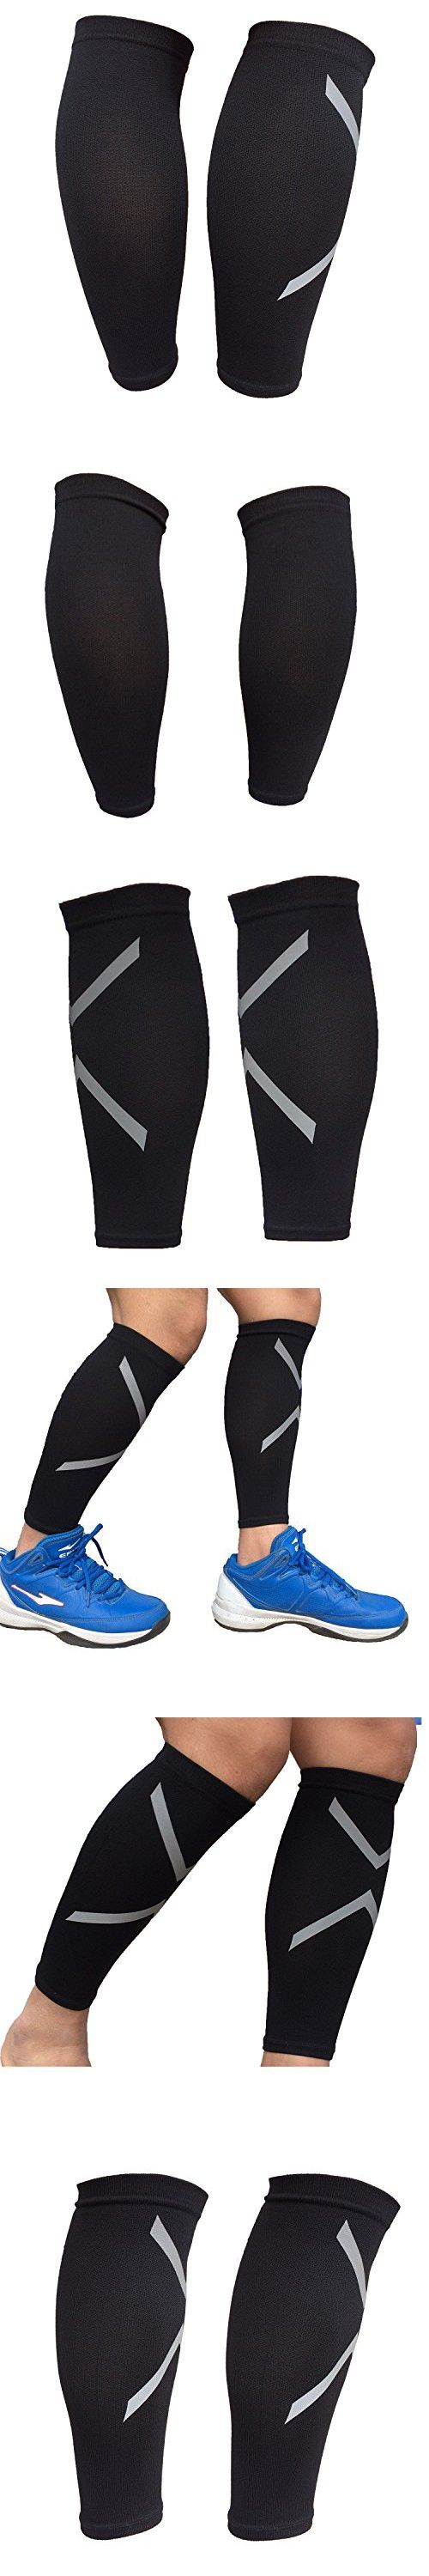 Calf Compression Sleeve, JAMIK Footless Socks Shin Splint / Leg Compression Sleeves Calves & Leg Cramps for Runners (1 Pair)